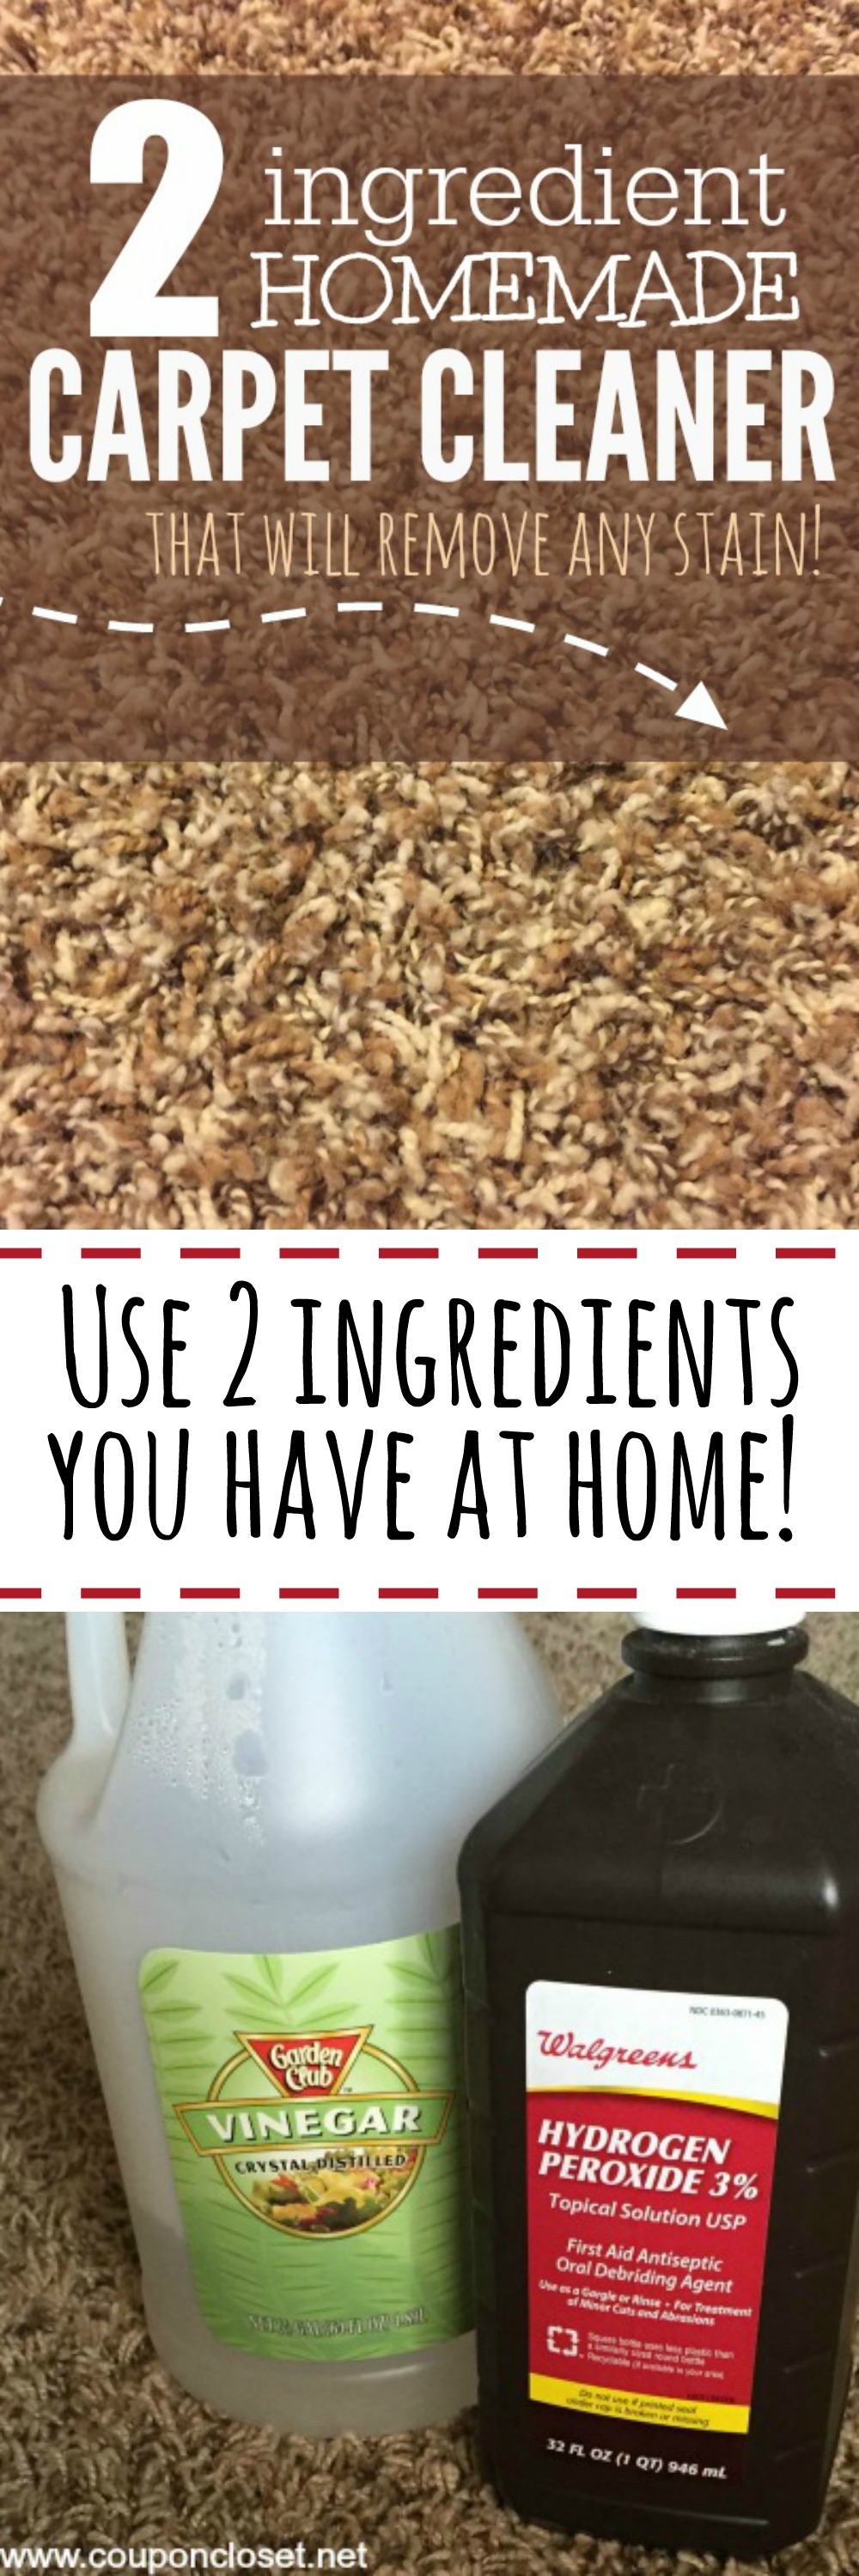 Homemade Carpet Cleaner - only 2 ingredients - One Crazy Mom